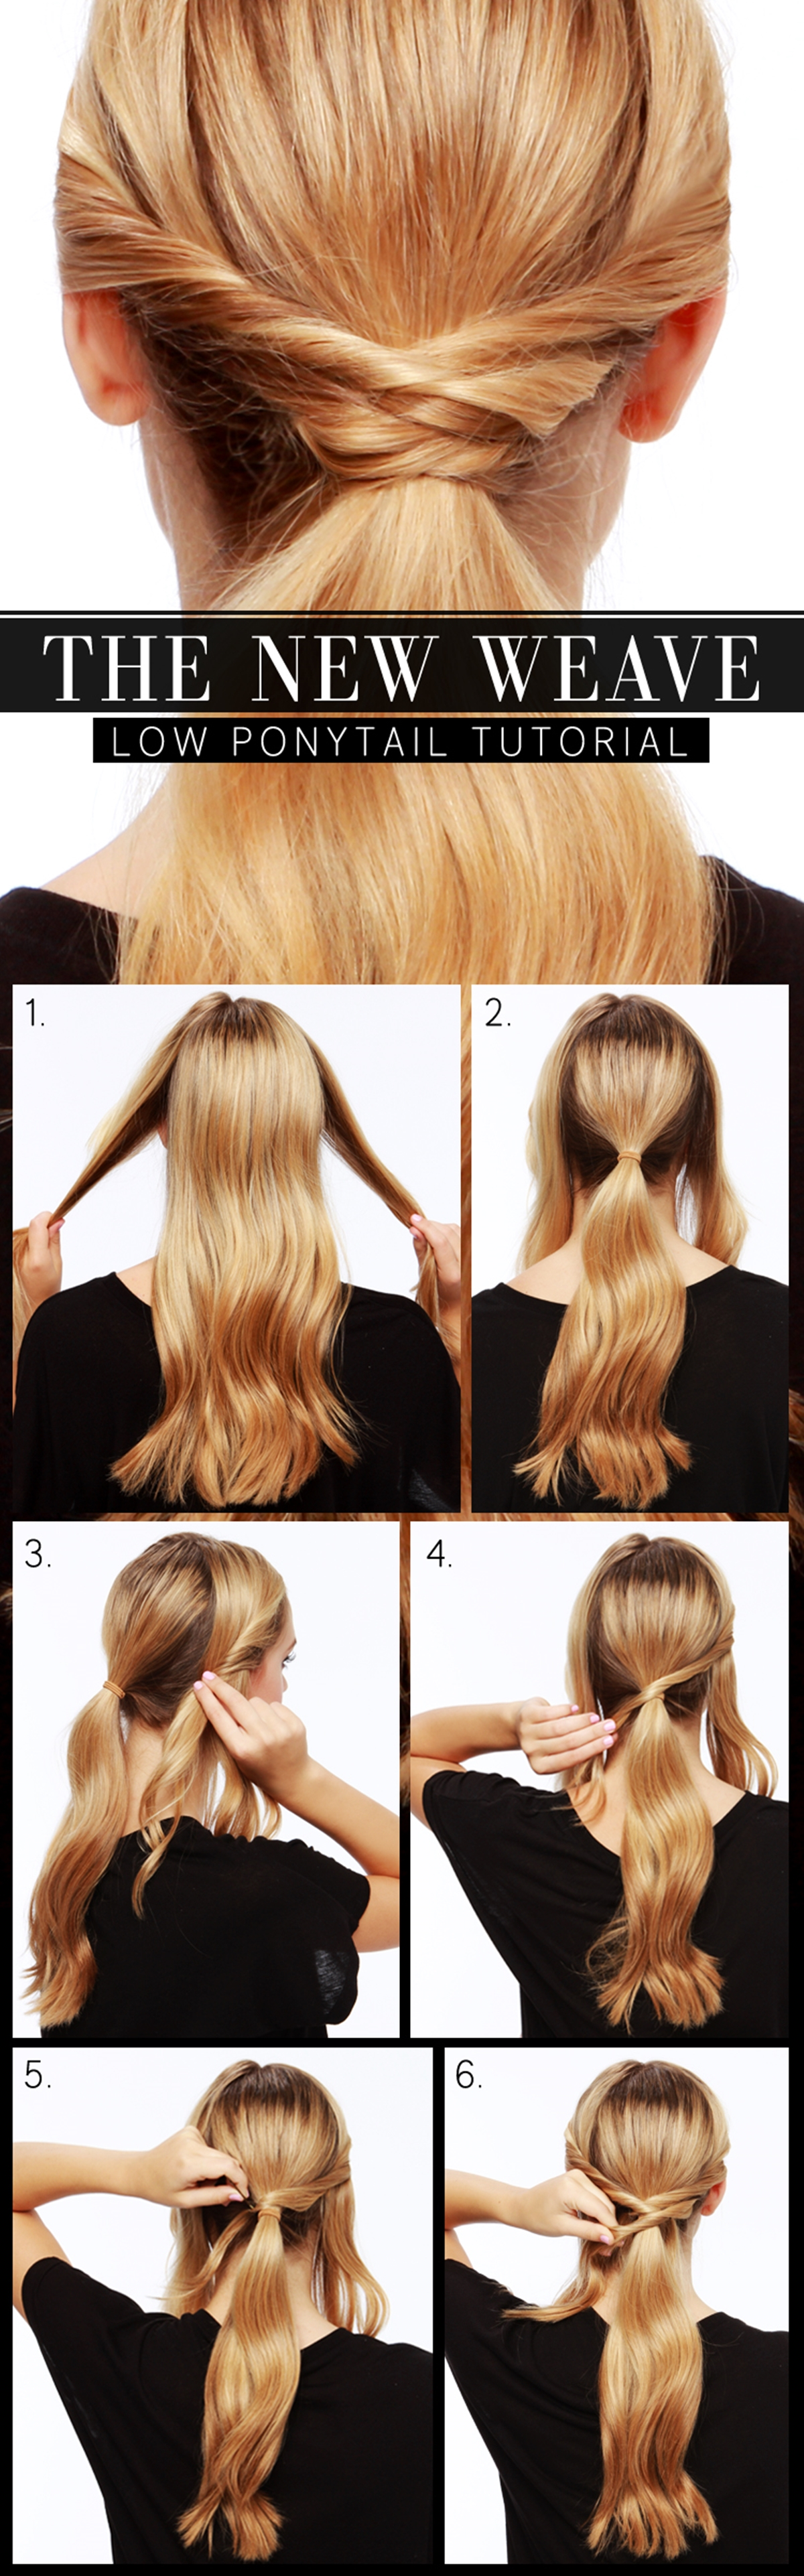 LowWovenPonytai m Wonderful DIY  Low woven Ponytail hairstyle